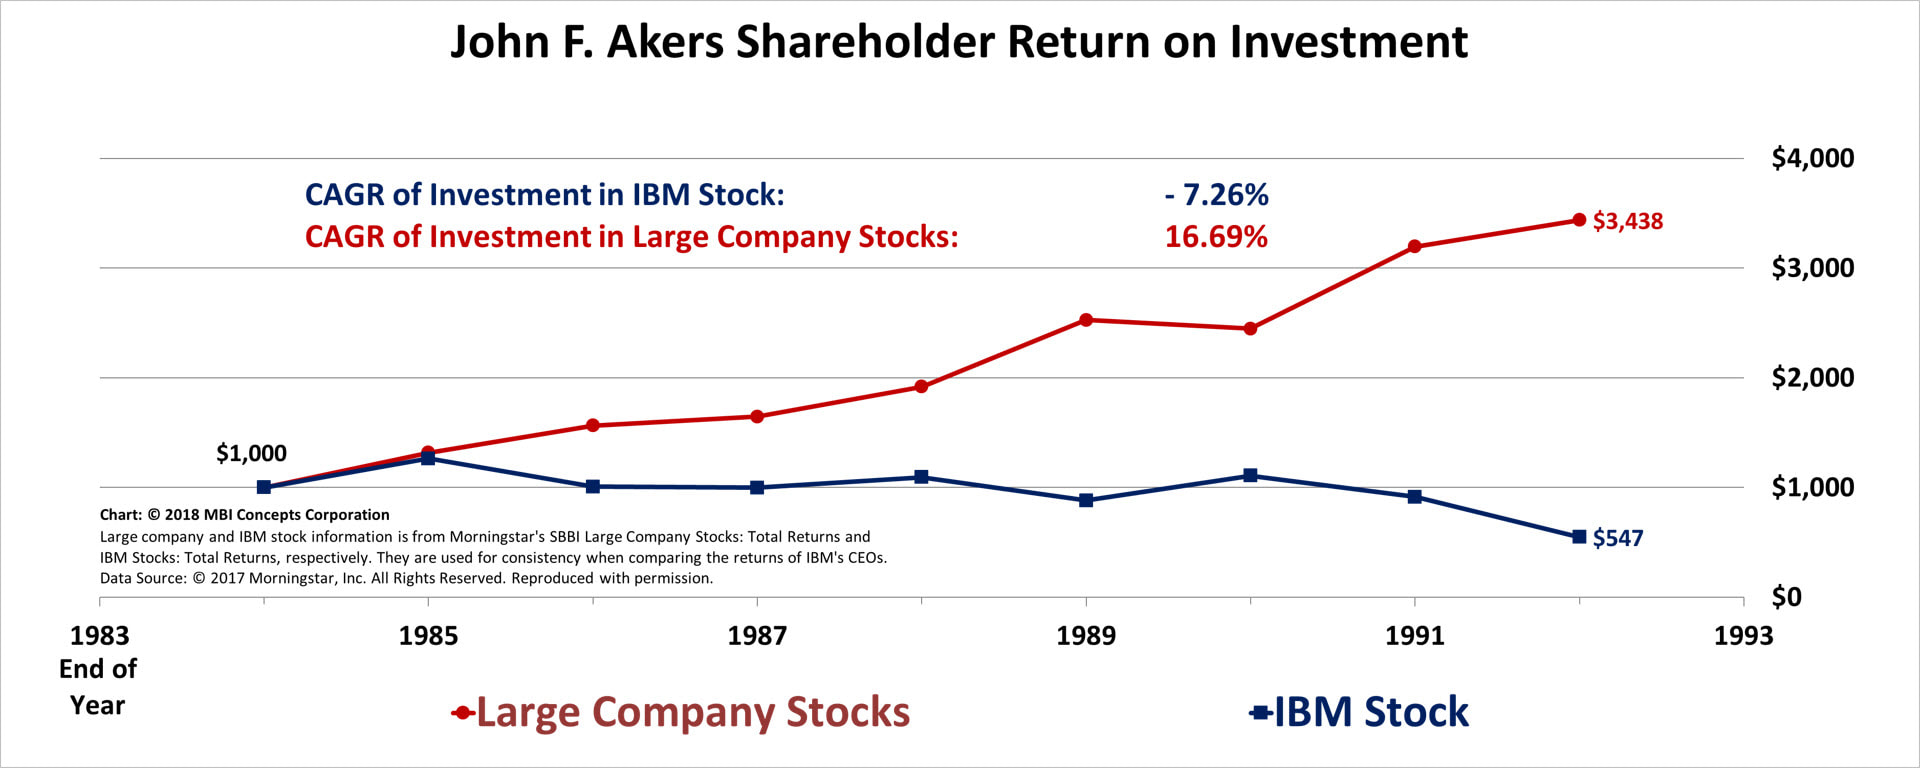 Line chart of John F. Akers' Shareholder Returns from 1985 through 1992 compared with large company stocks.